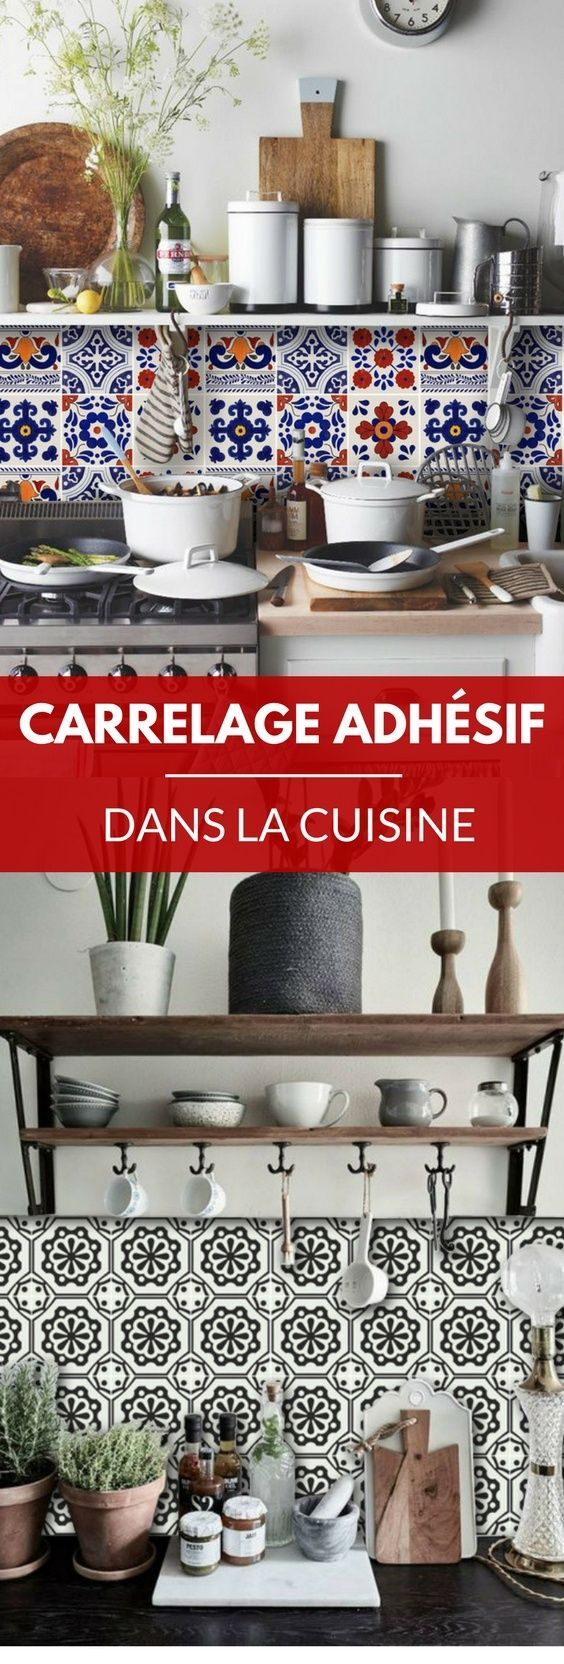 Best 25 carrelage adhesif ideas on pinterest carrelage adh sif cuisine ad - Faux carrelage adhesif ...